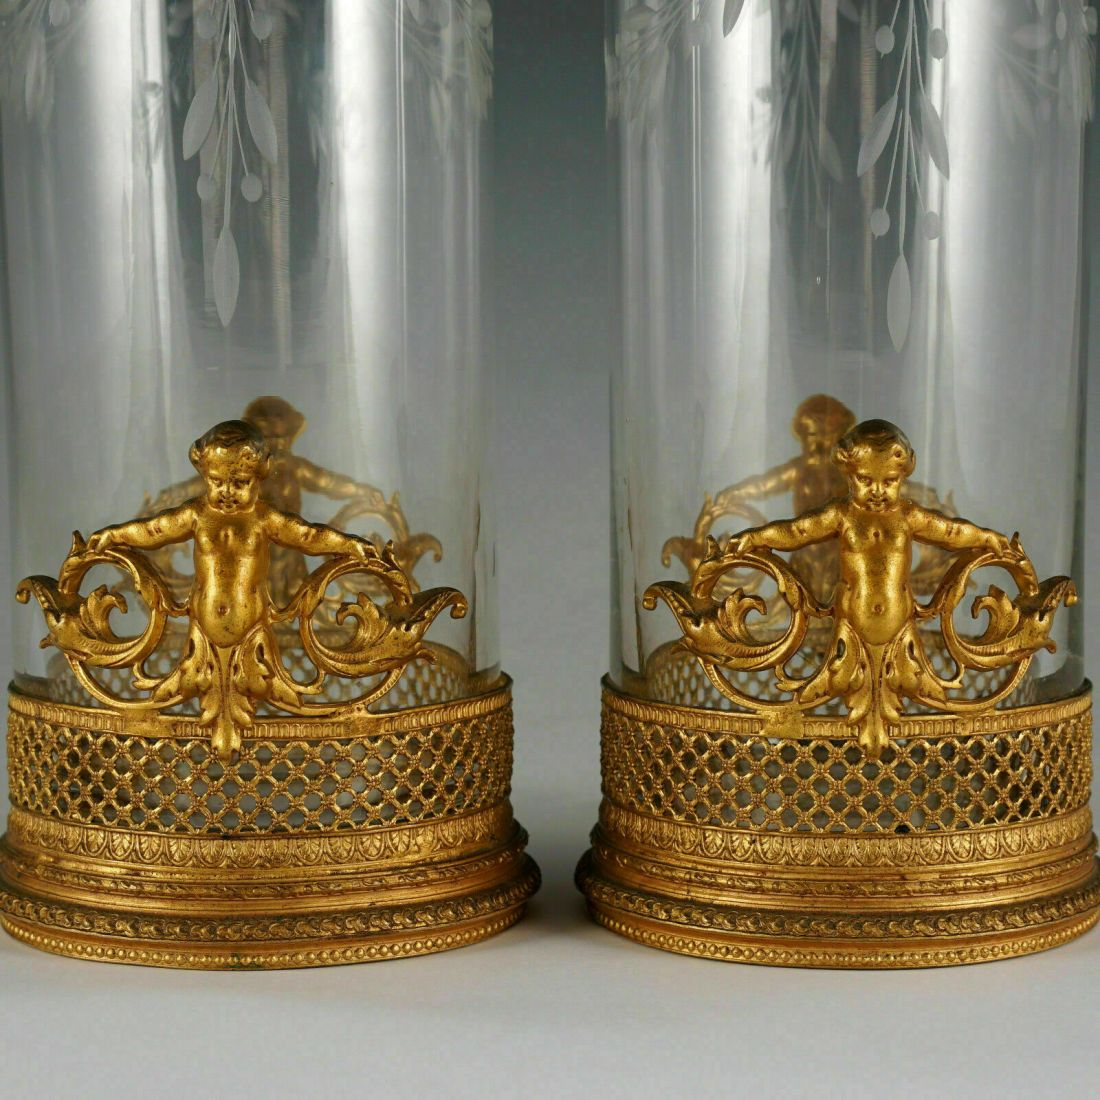 Pair of Empire glass vases with ormolu gilt bronze putti (putti detail). Mid 19th c. French.